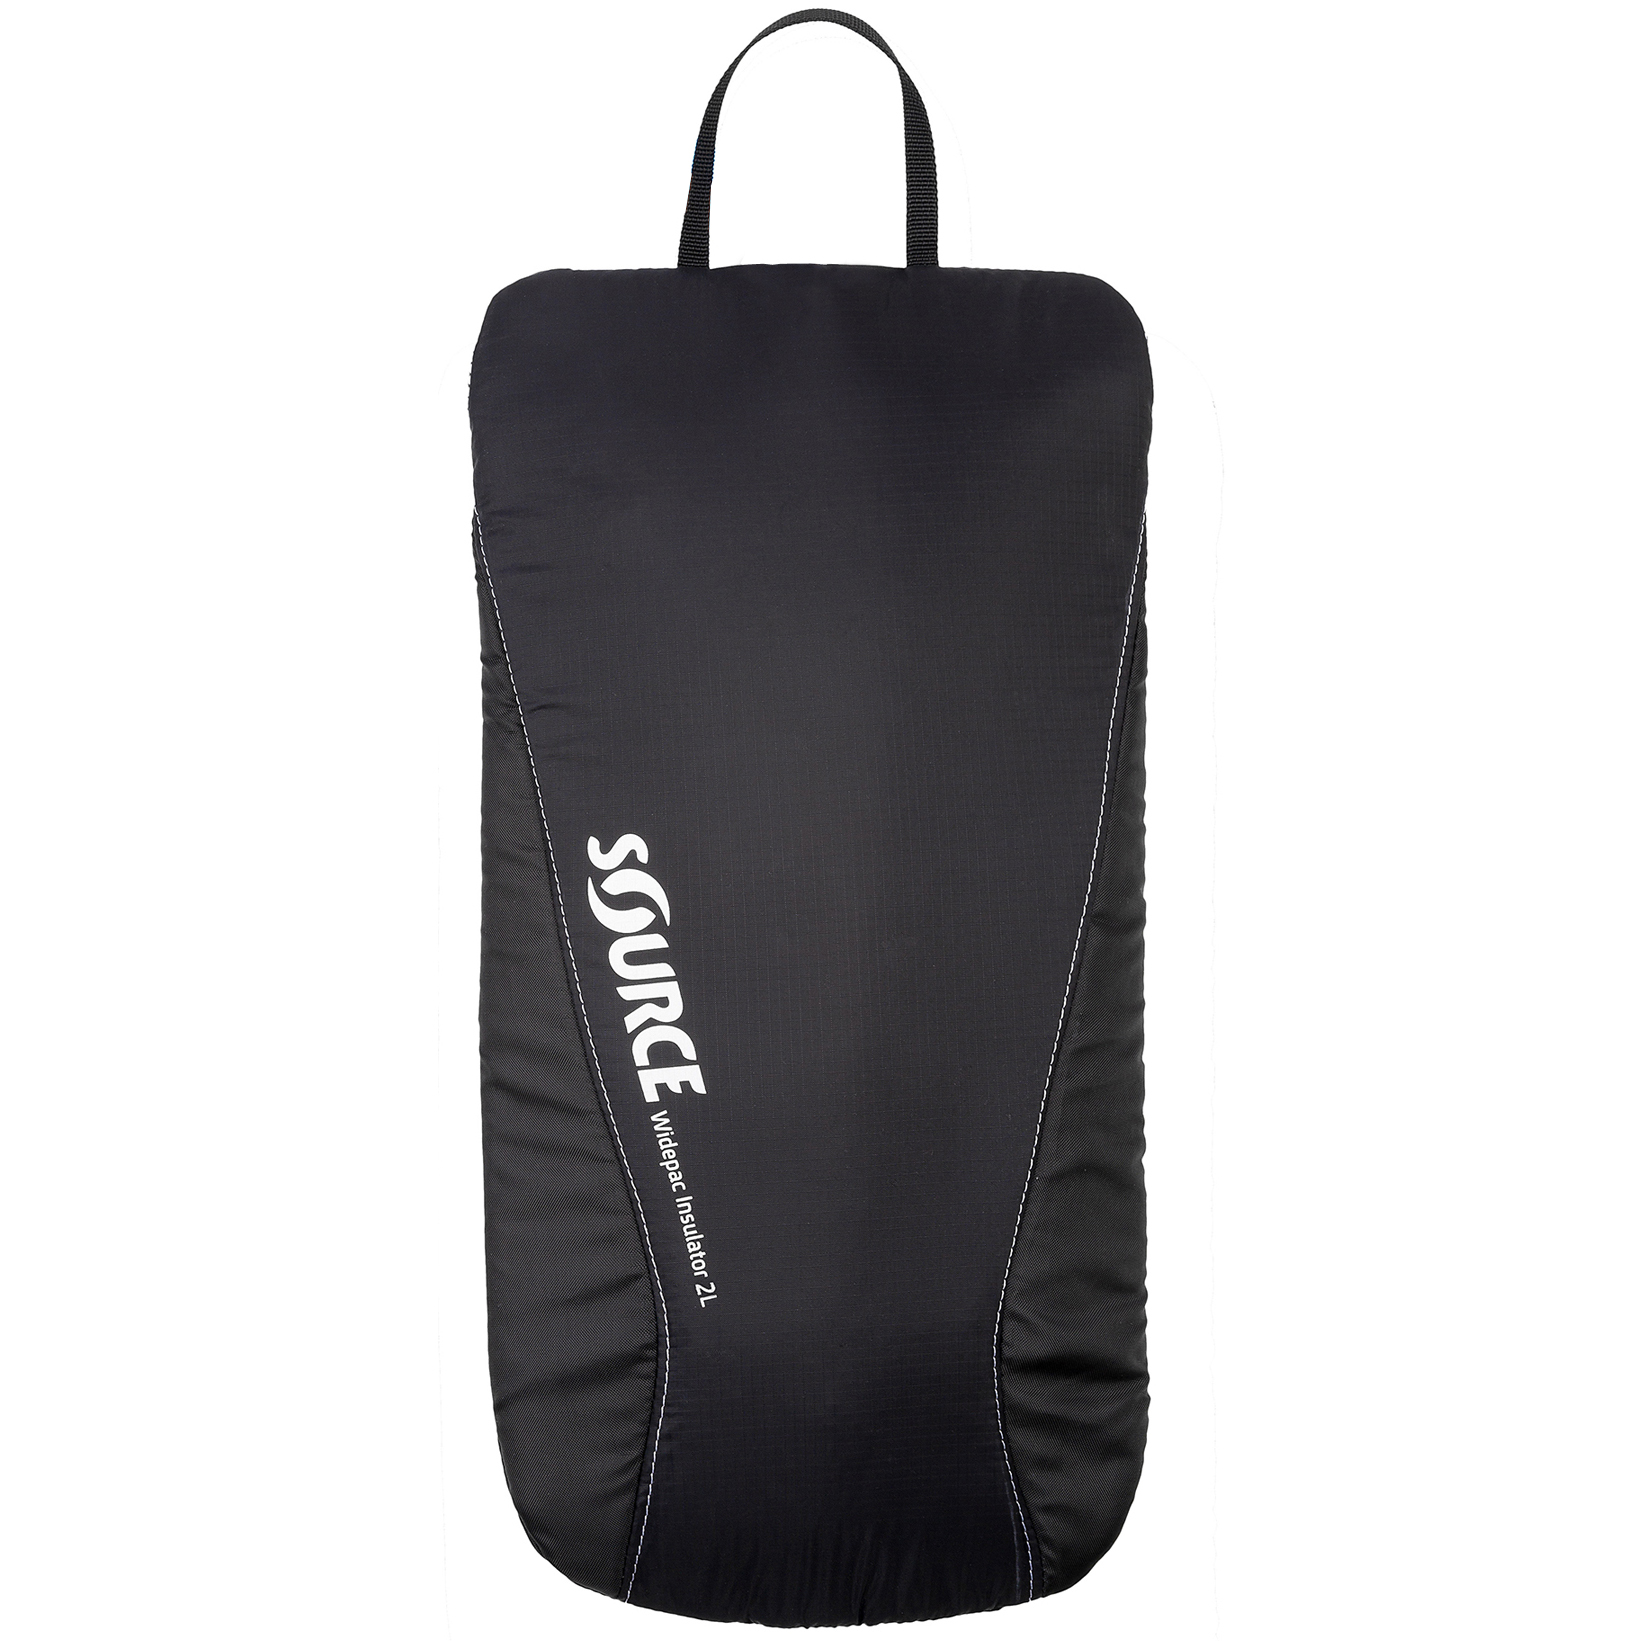 Source Widepac Insulator for Hydration Bladder - 3 litres